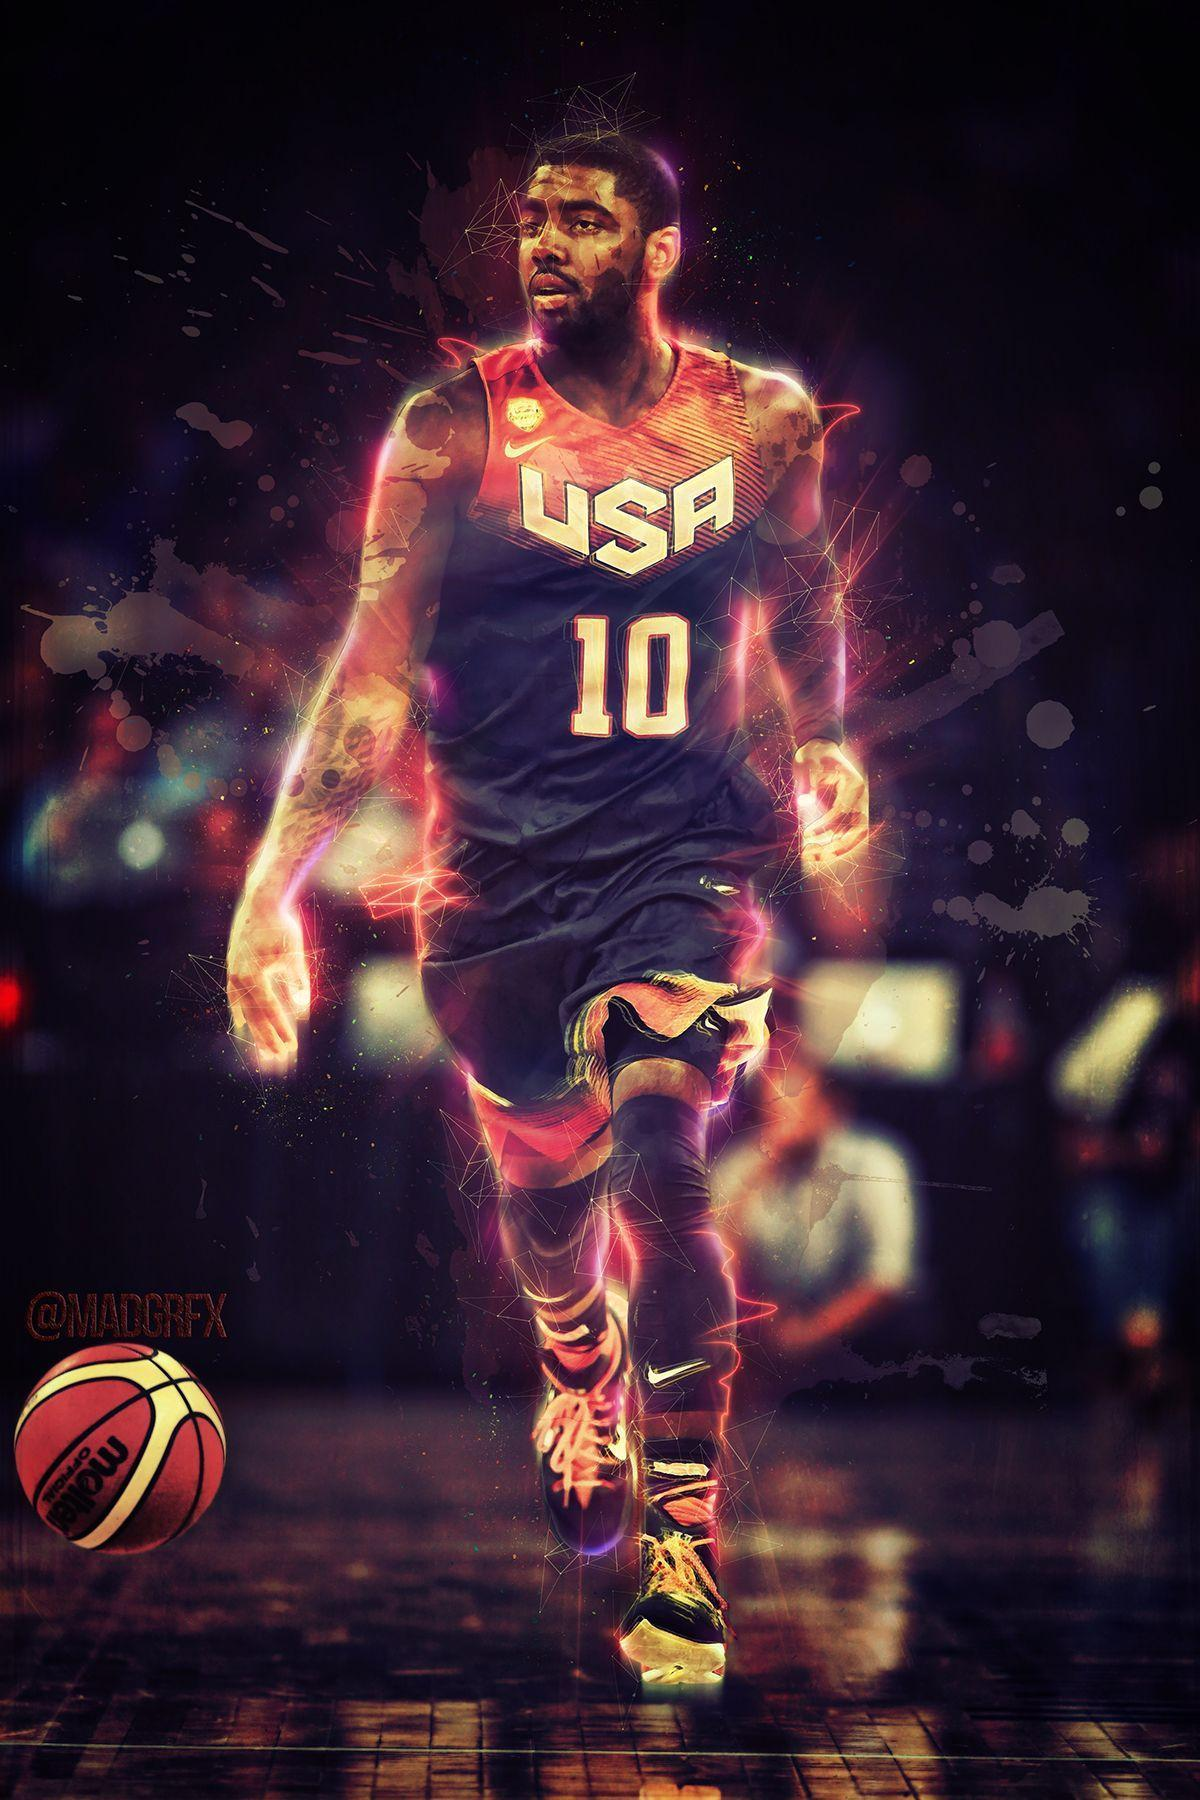 Kyrie Irving 2017 Wallpapers - Wallpaper Cave Kyrie Irving Wallpaper Download